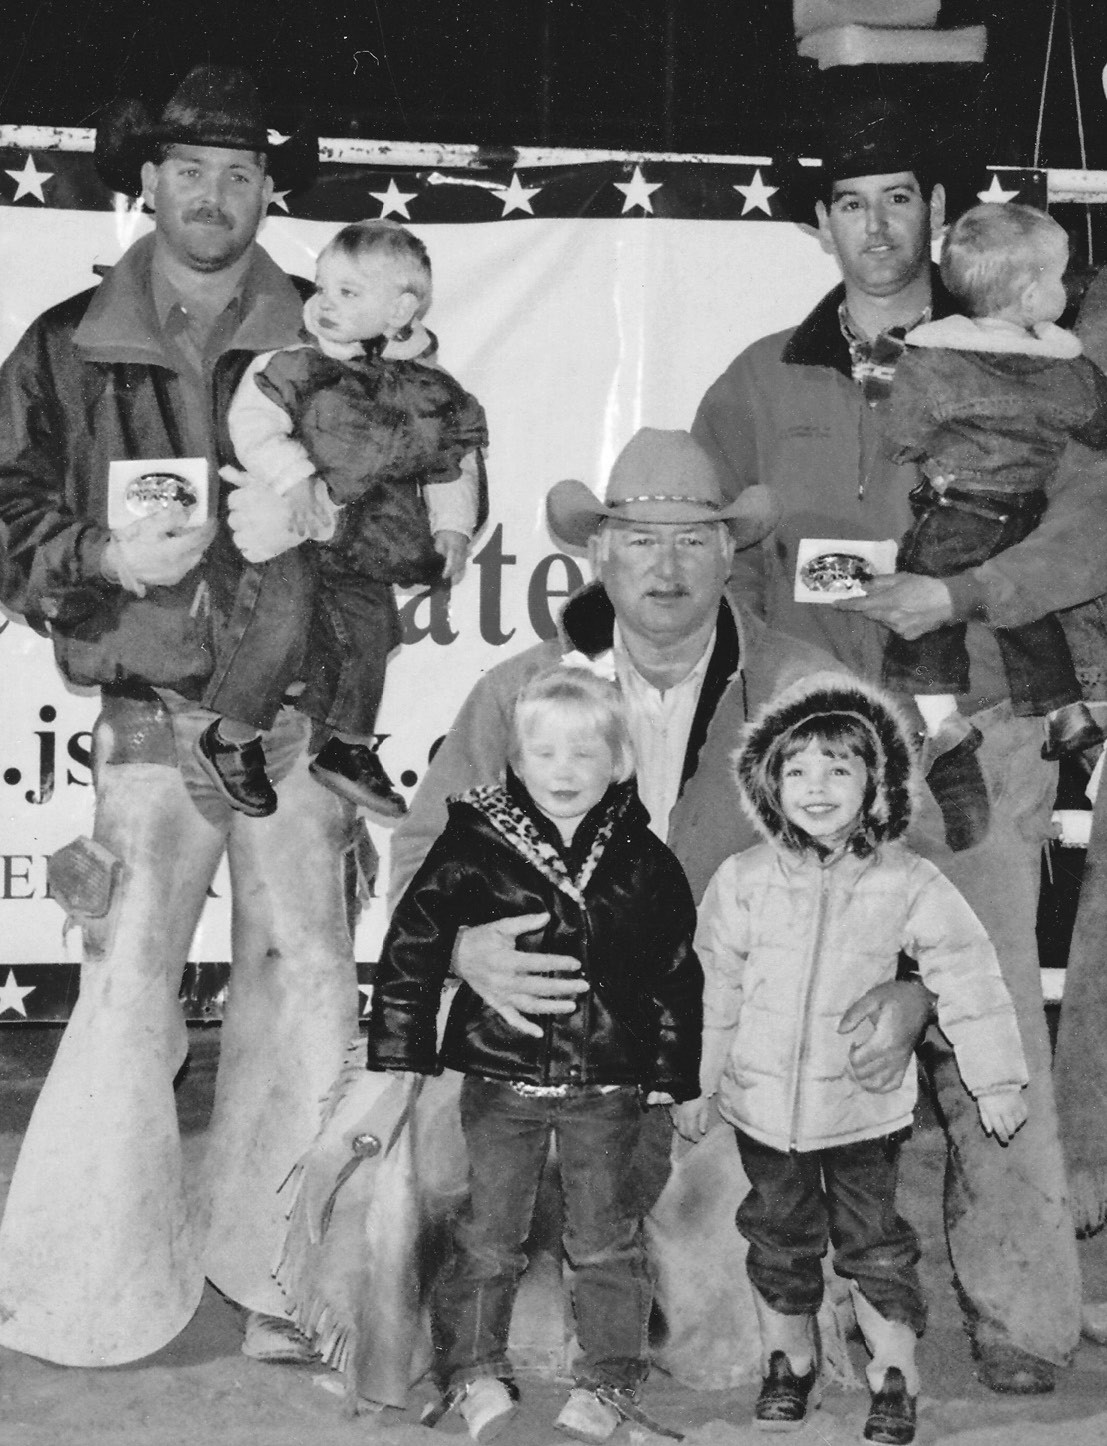 Randy Mangum, (kneeling with granddaughters Blye and Camry) and sons Clayton (with Rance) and Colby (with Layten) are proud winners at a ranch rodeo in Laredo.